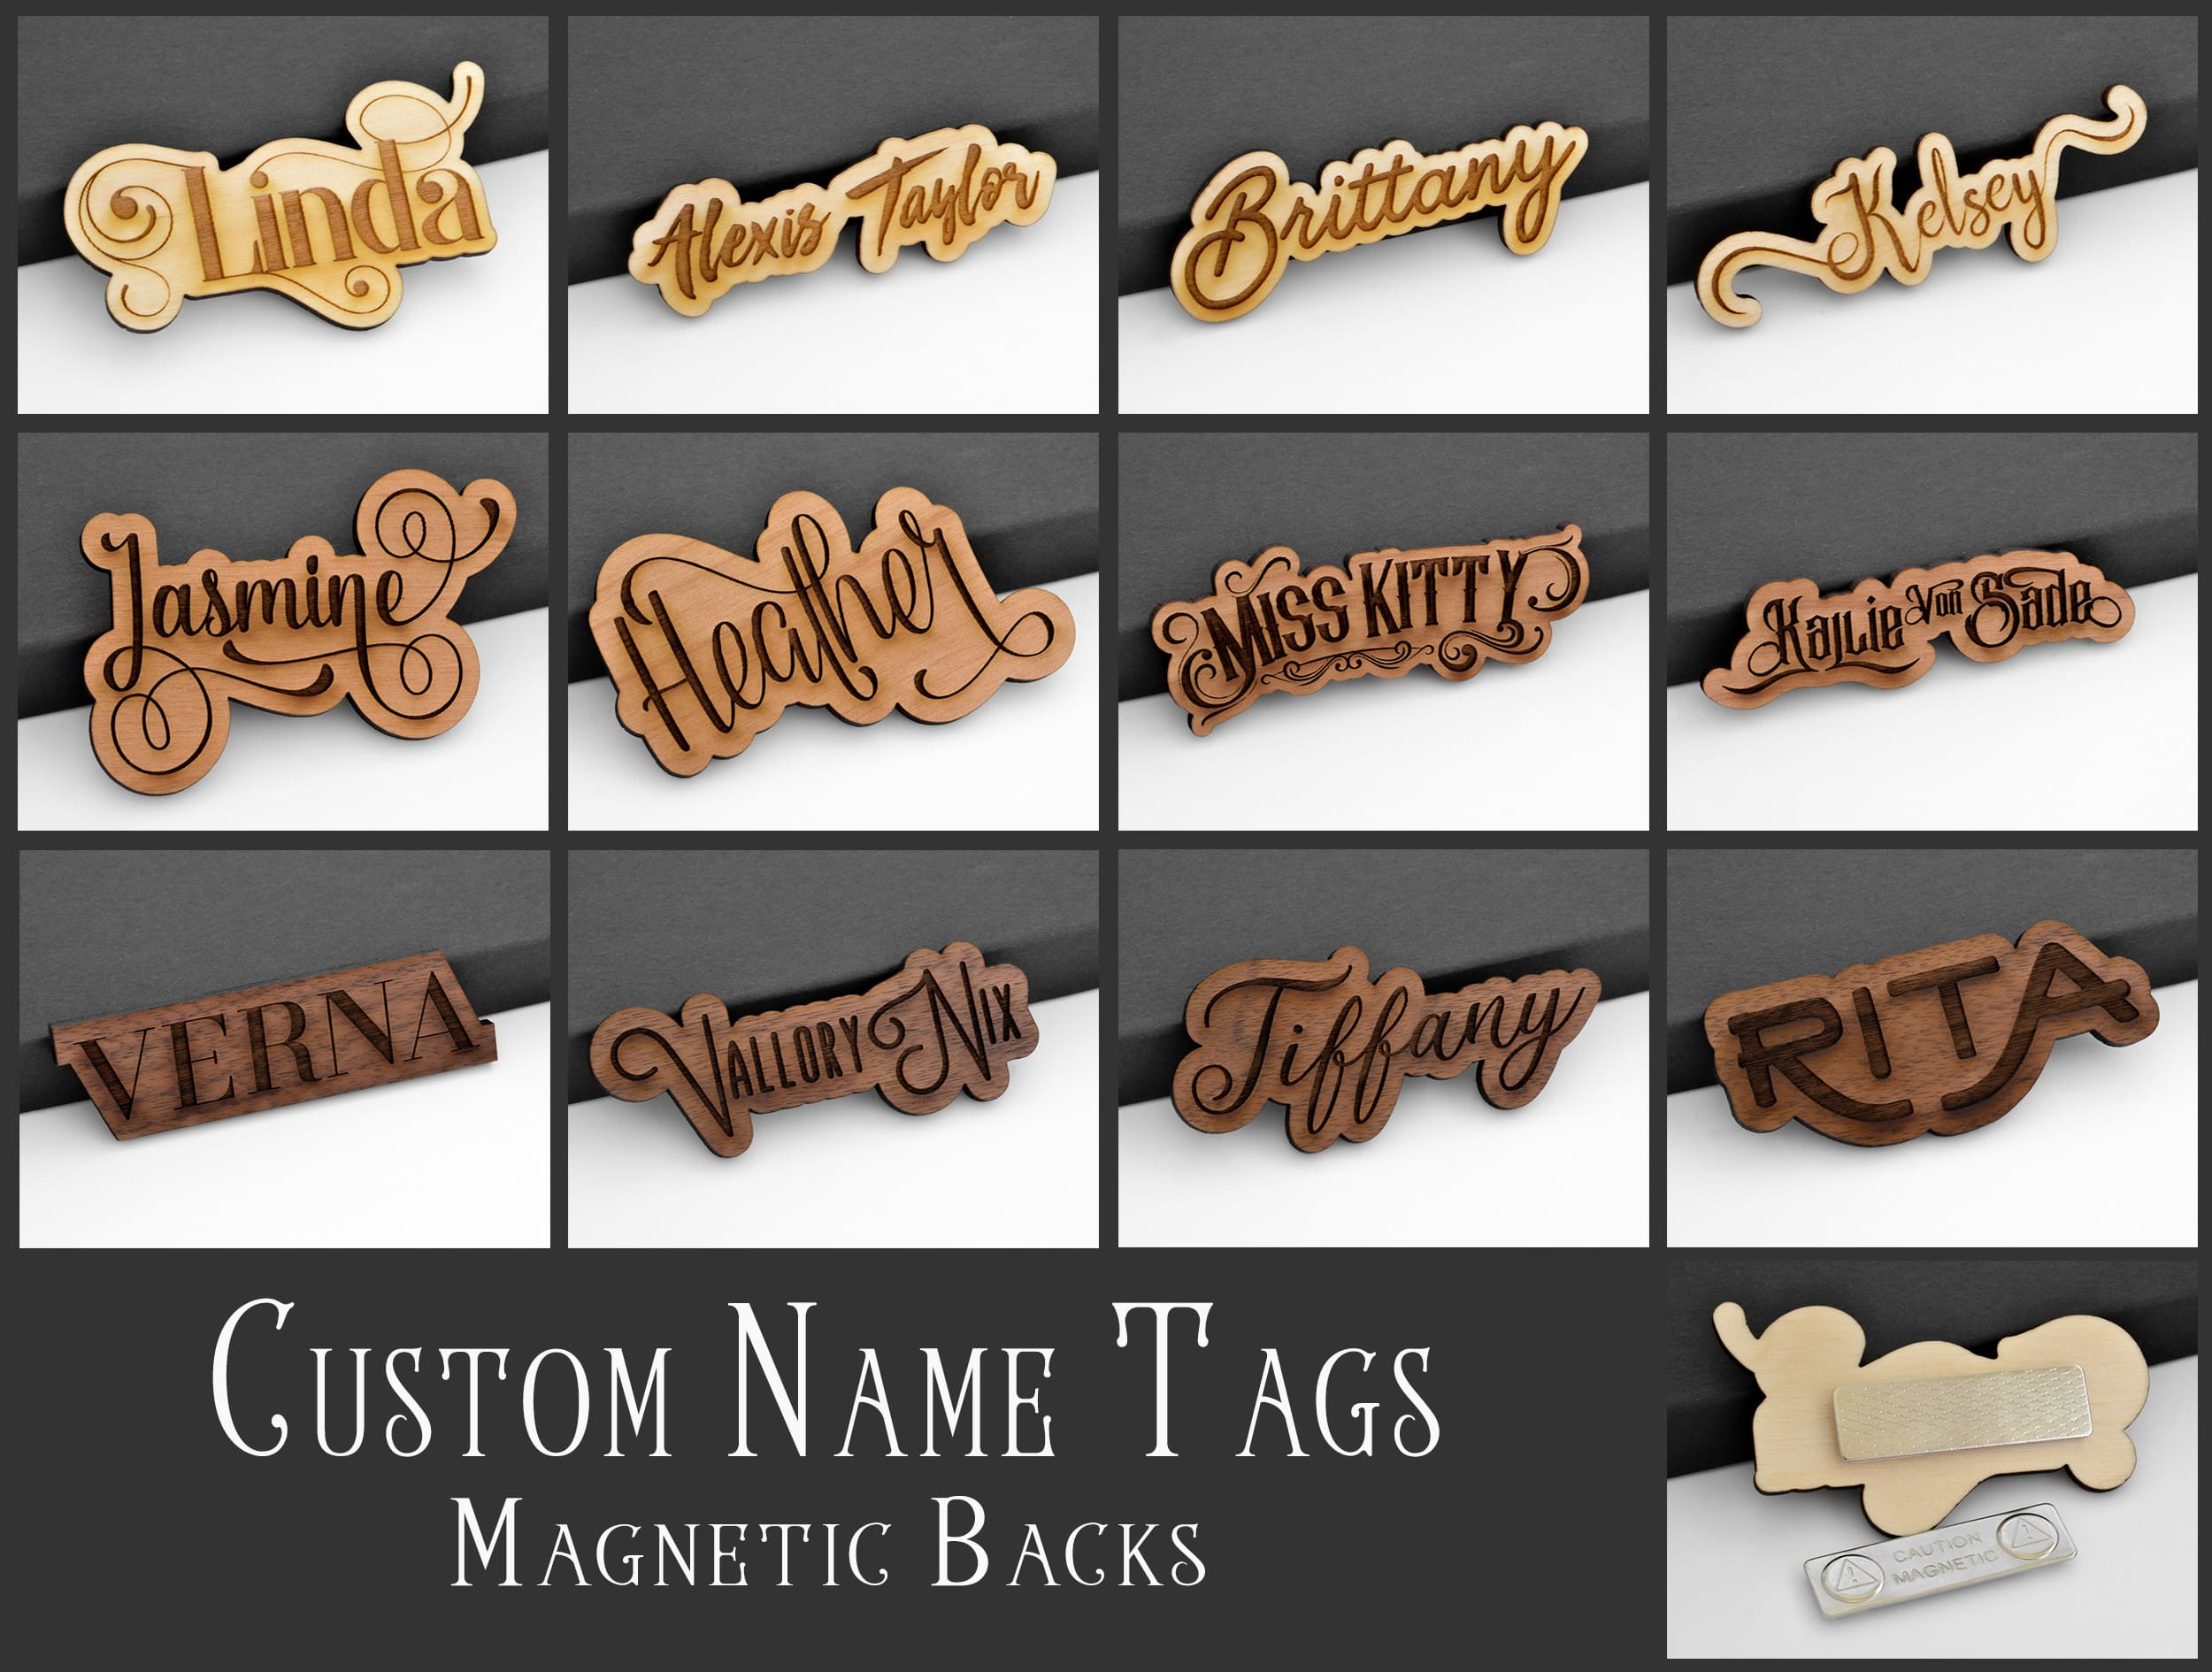 create a personalized name tag by laser engraving wood